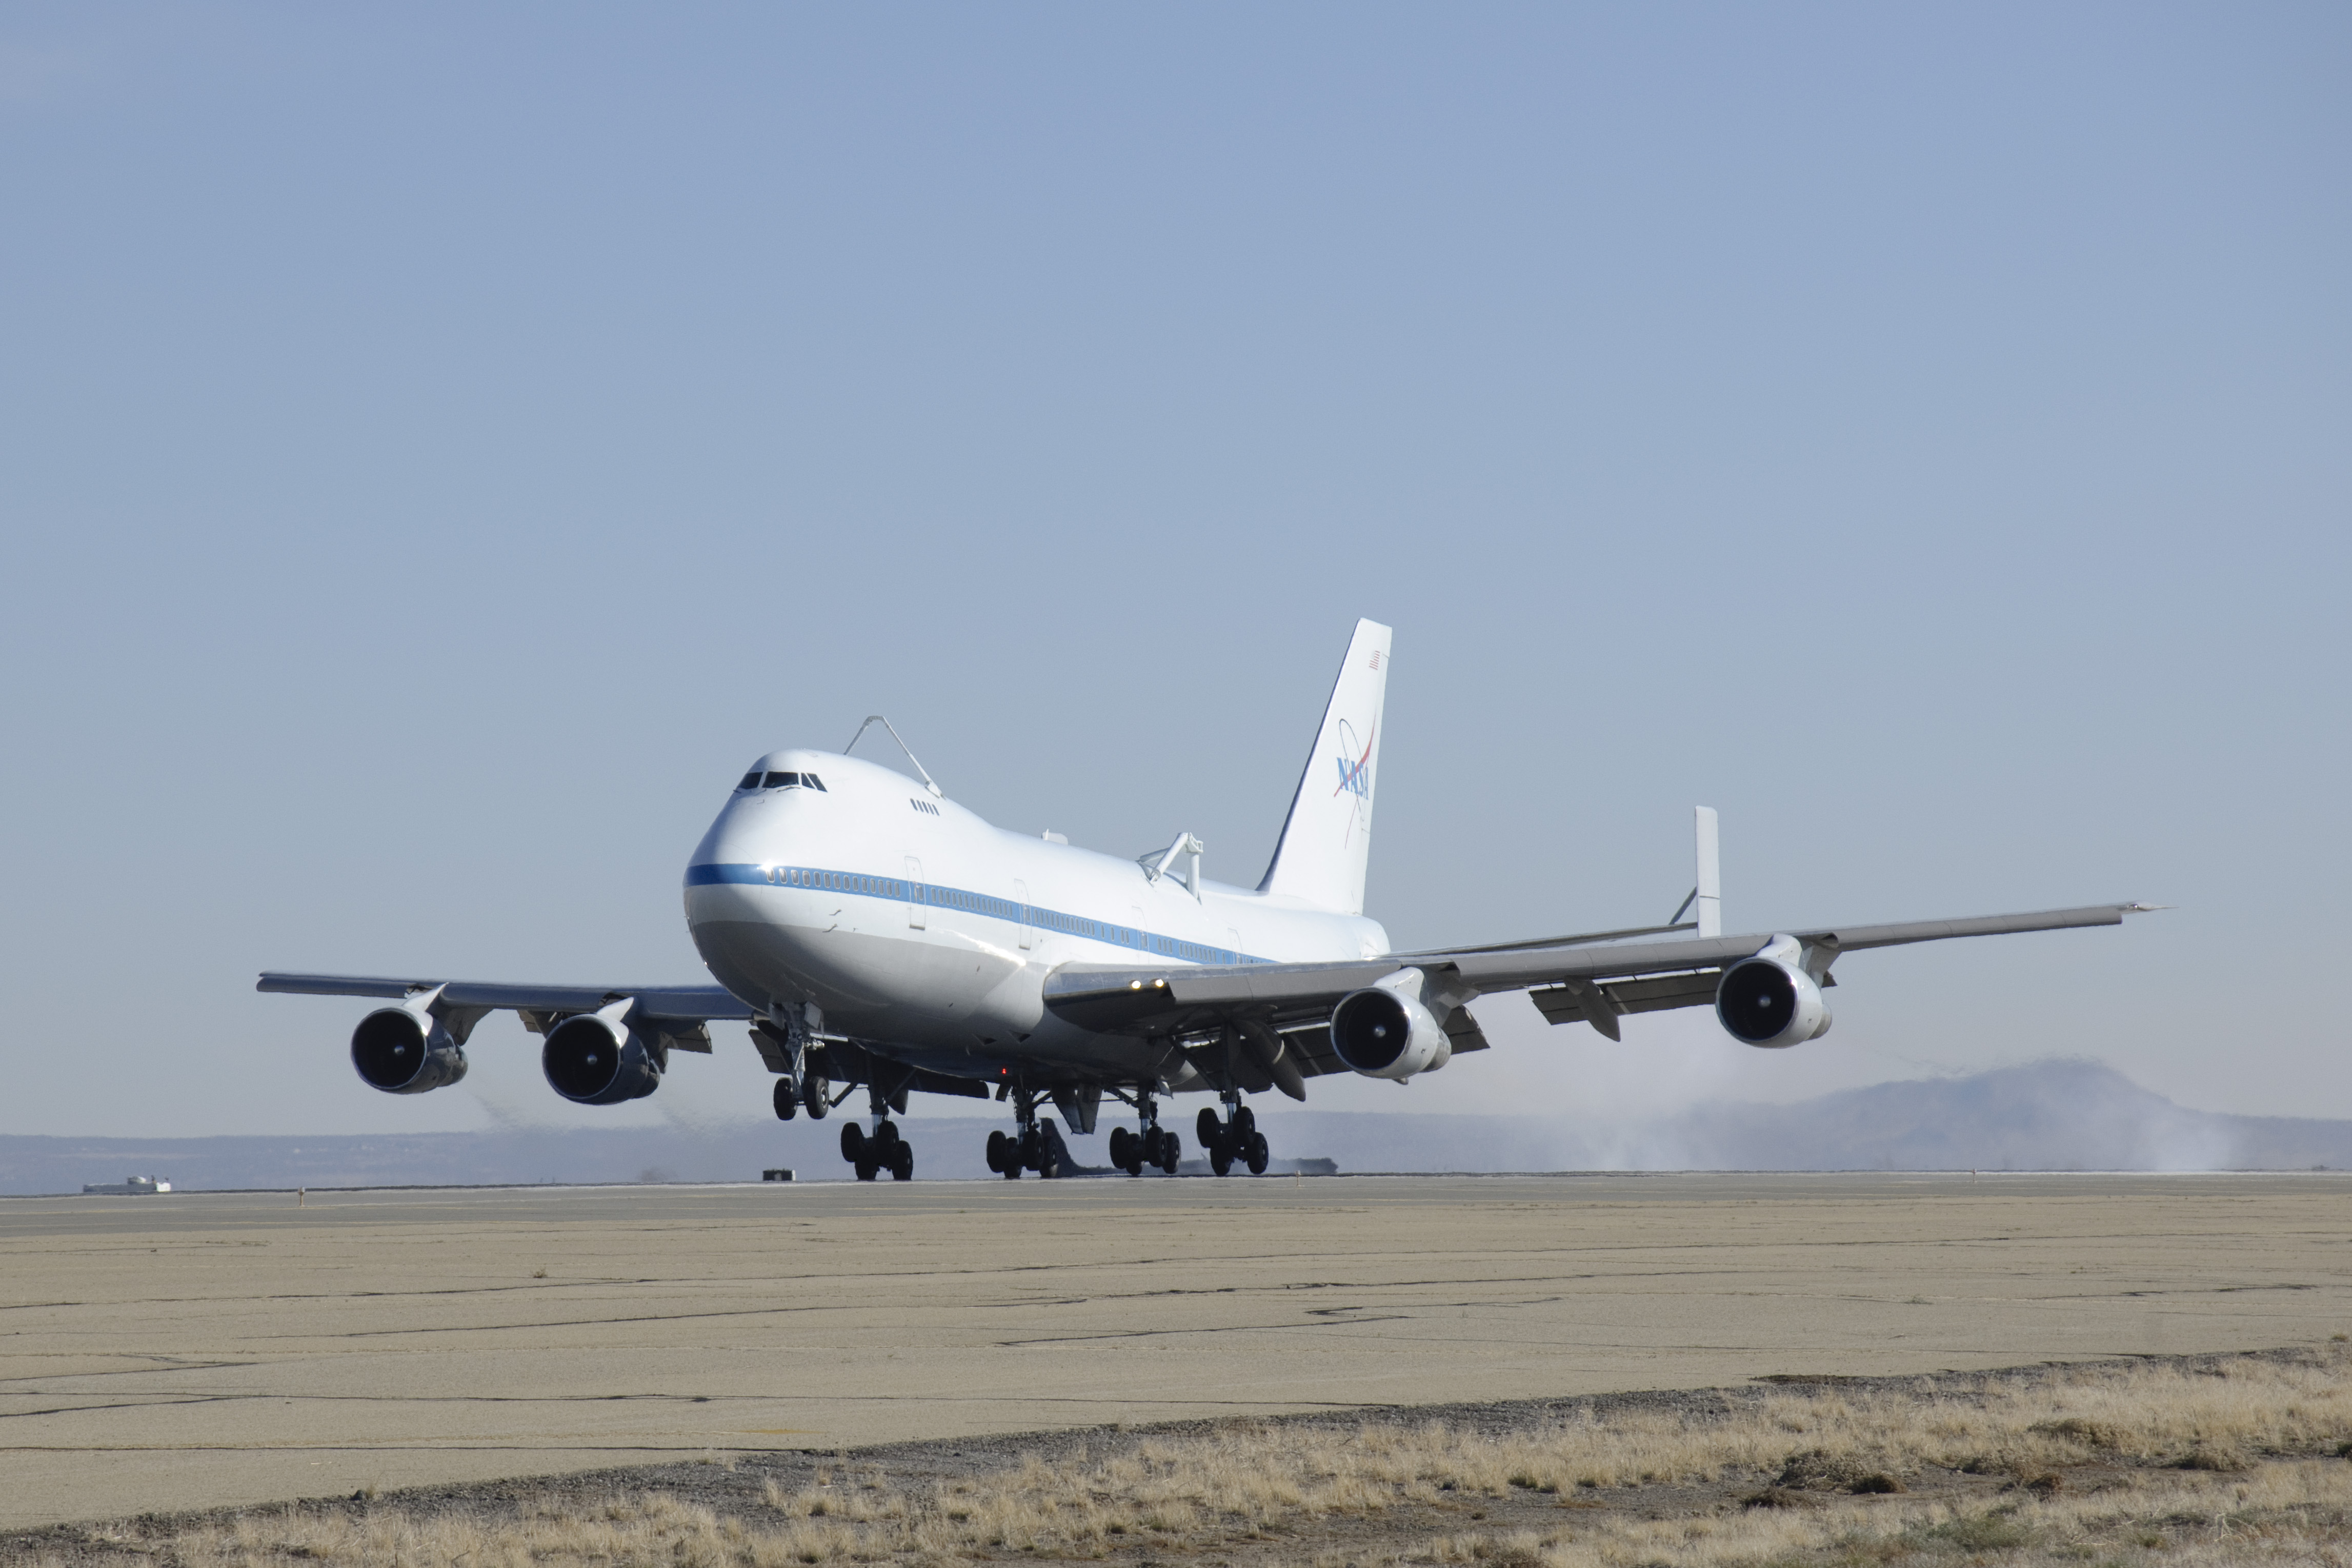 NASA Space Shuttle-Carrying Jumbo Jet Retires After One Last Flight